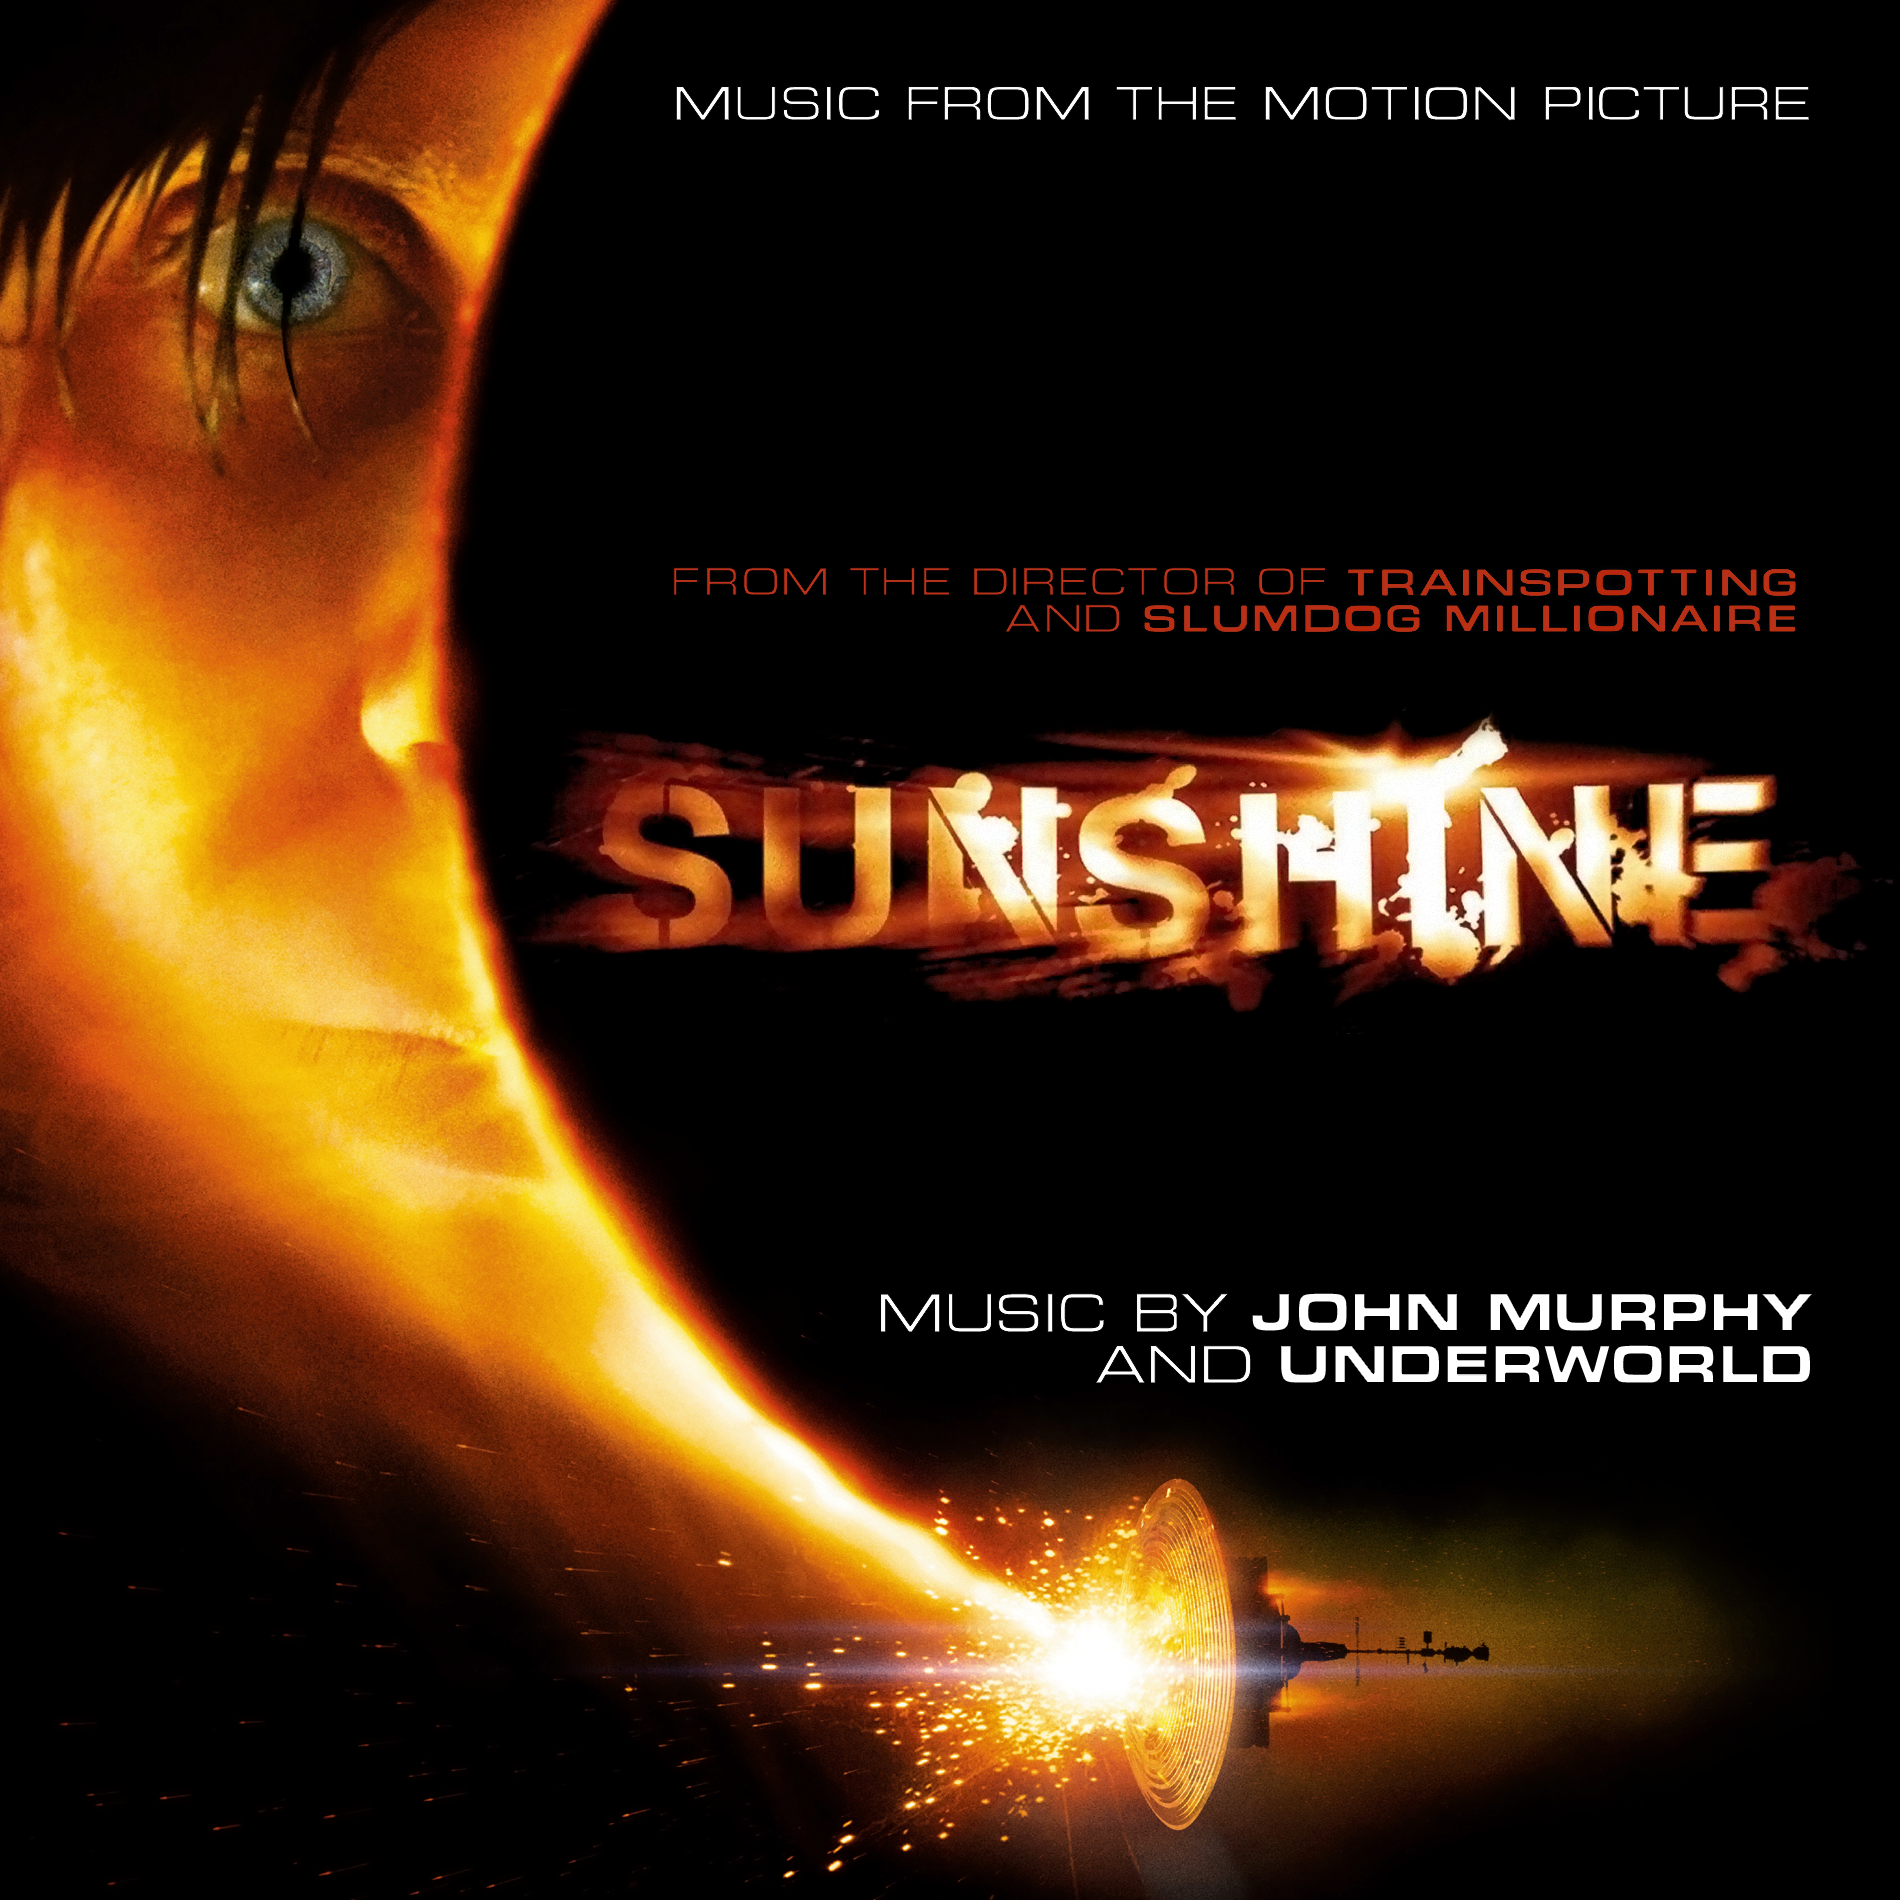 Album Artist: John Murphy and Underworld / Album Title: Sunshine (Music from the Motion Picture)